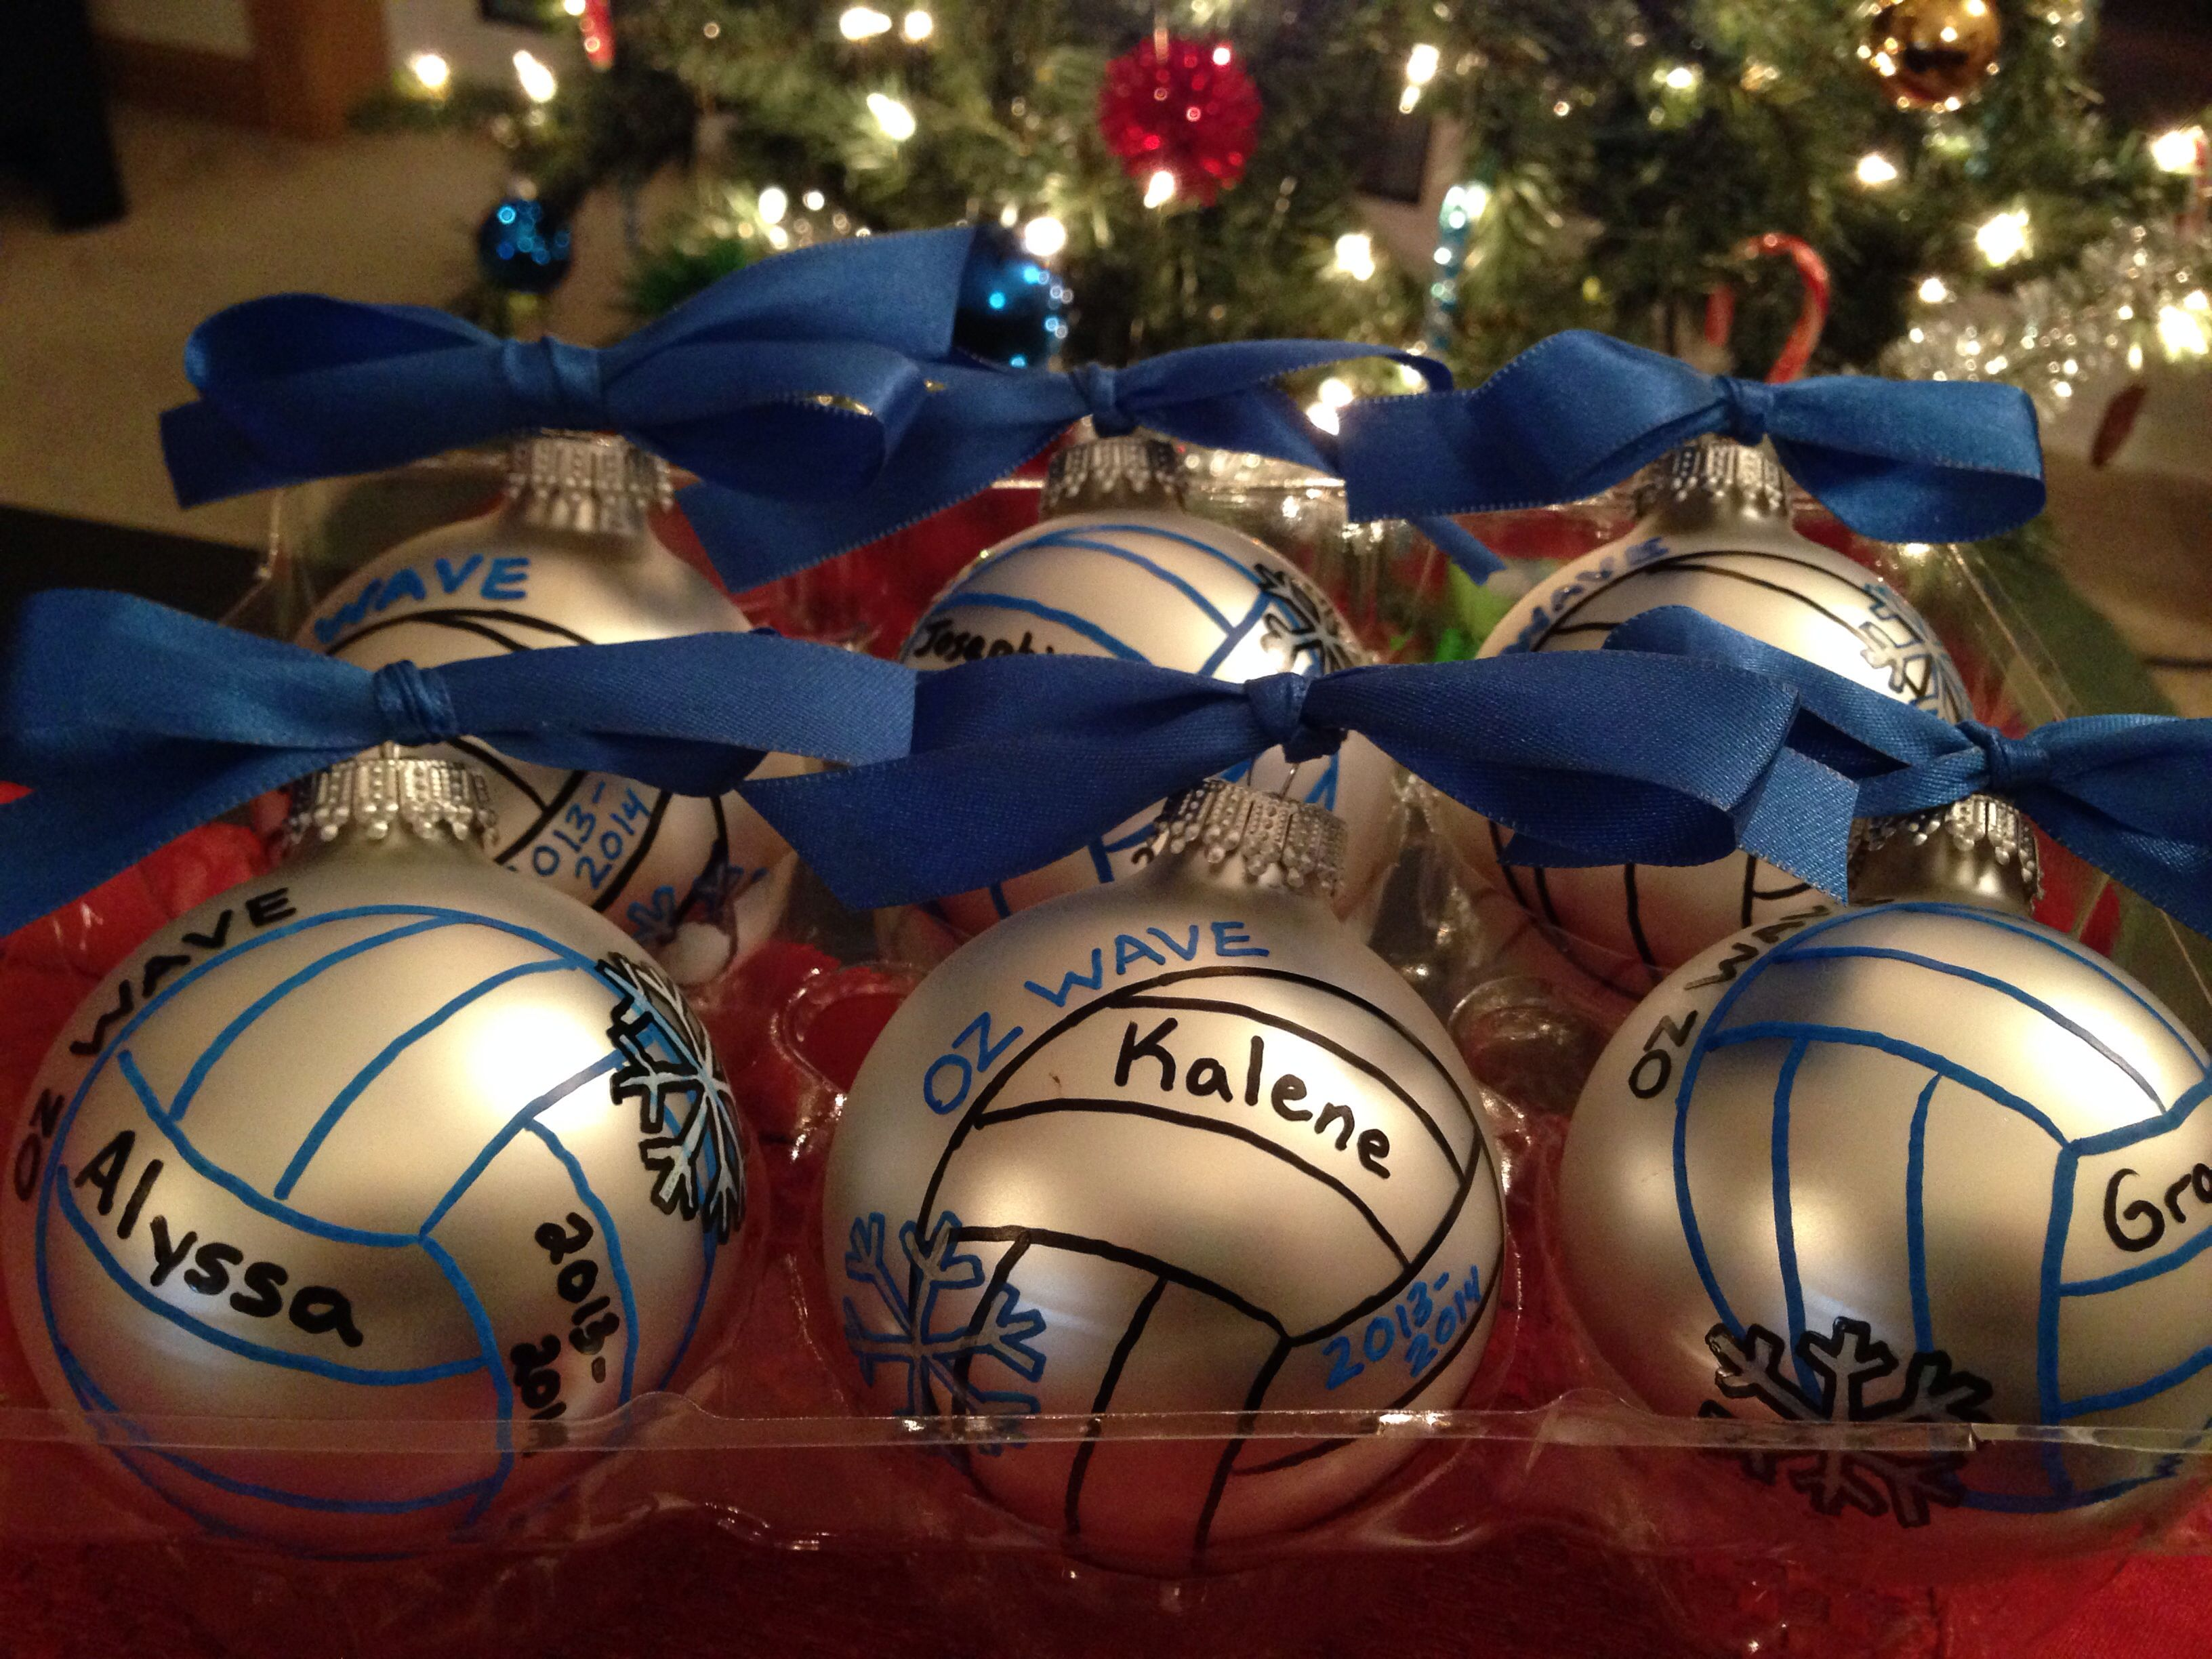 Christmas ornament for volleyball